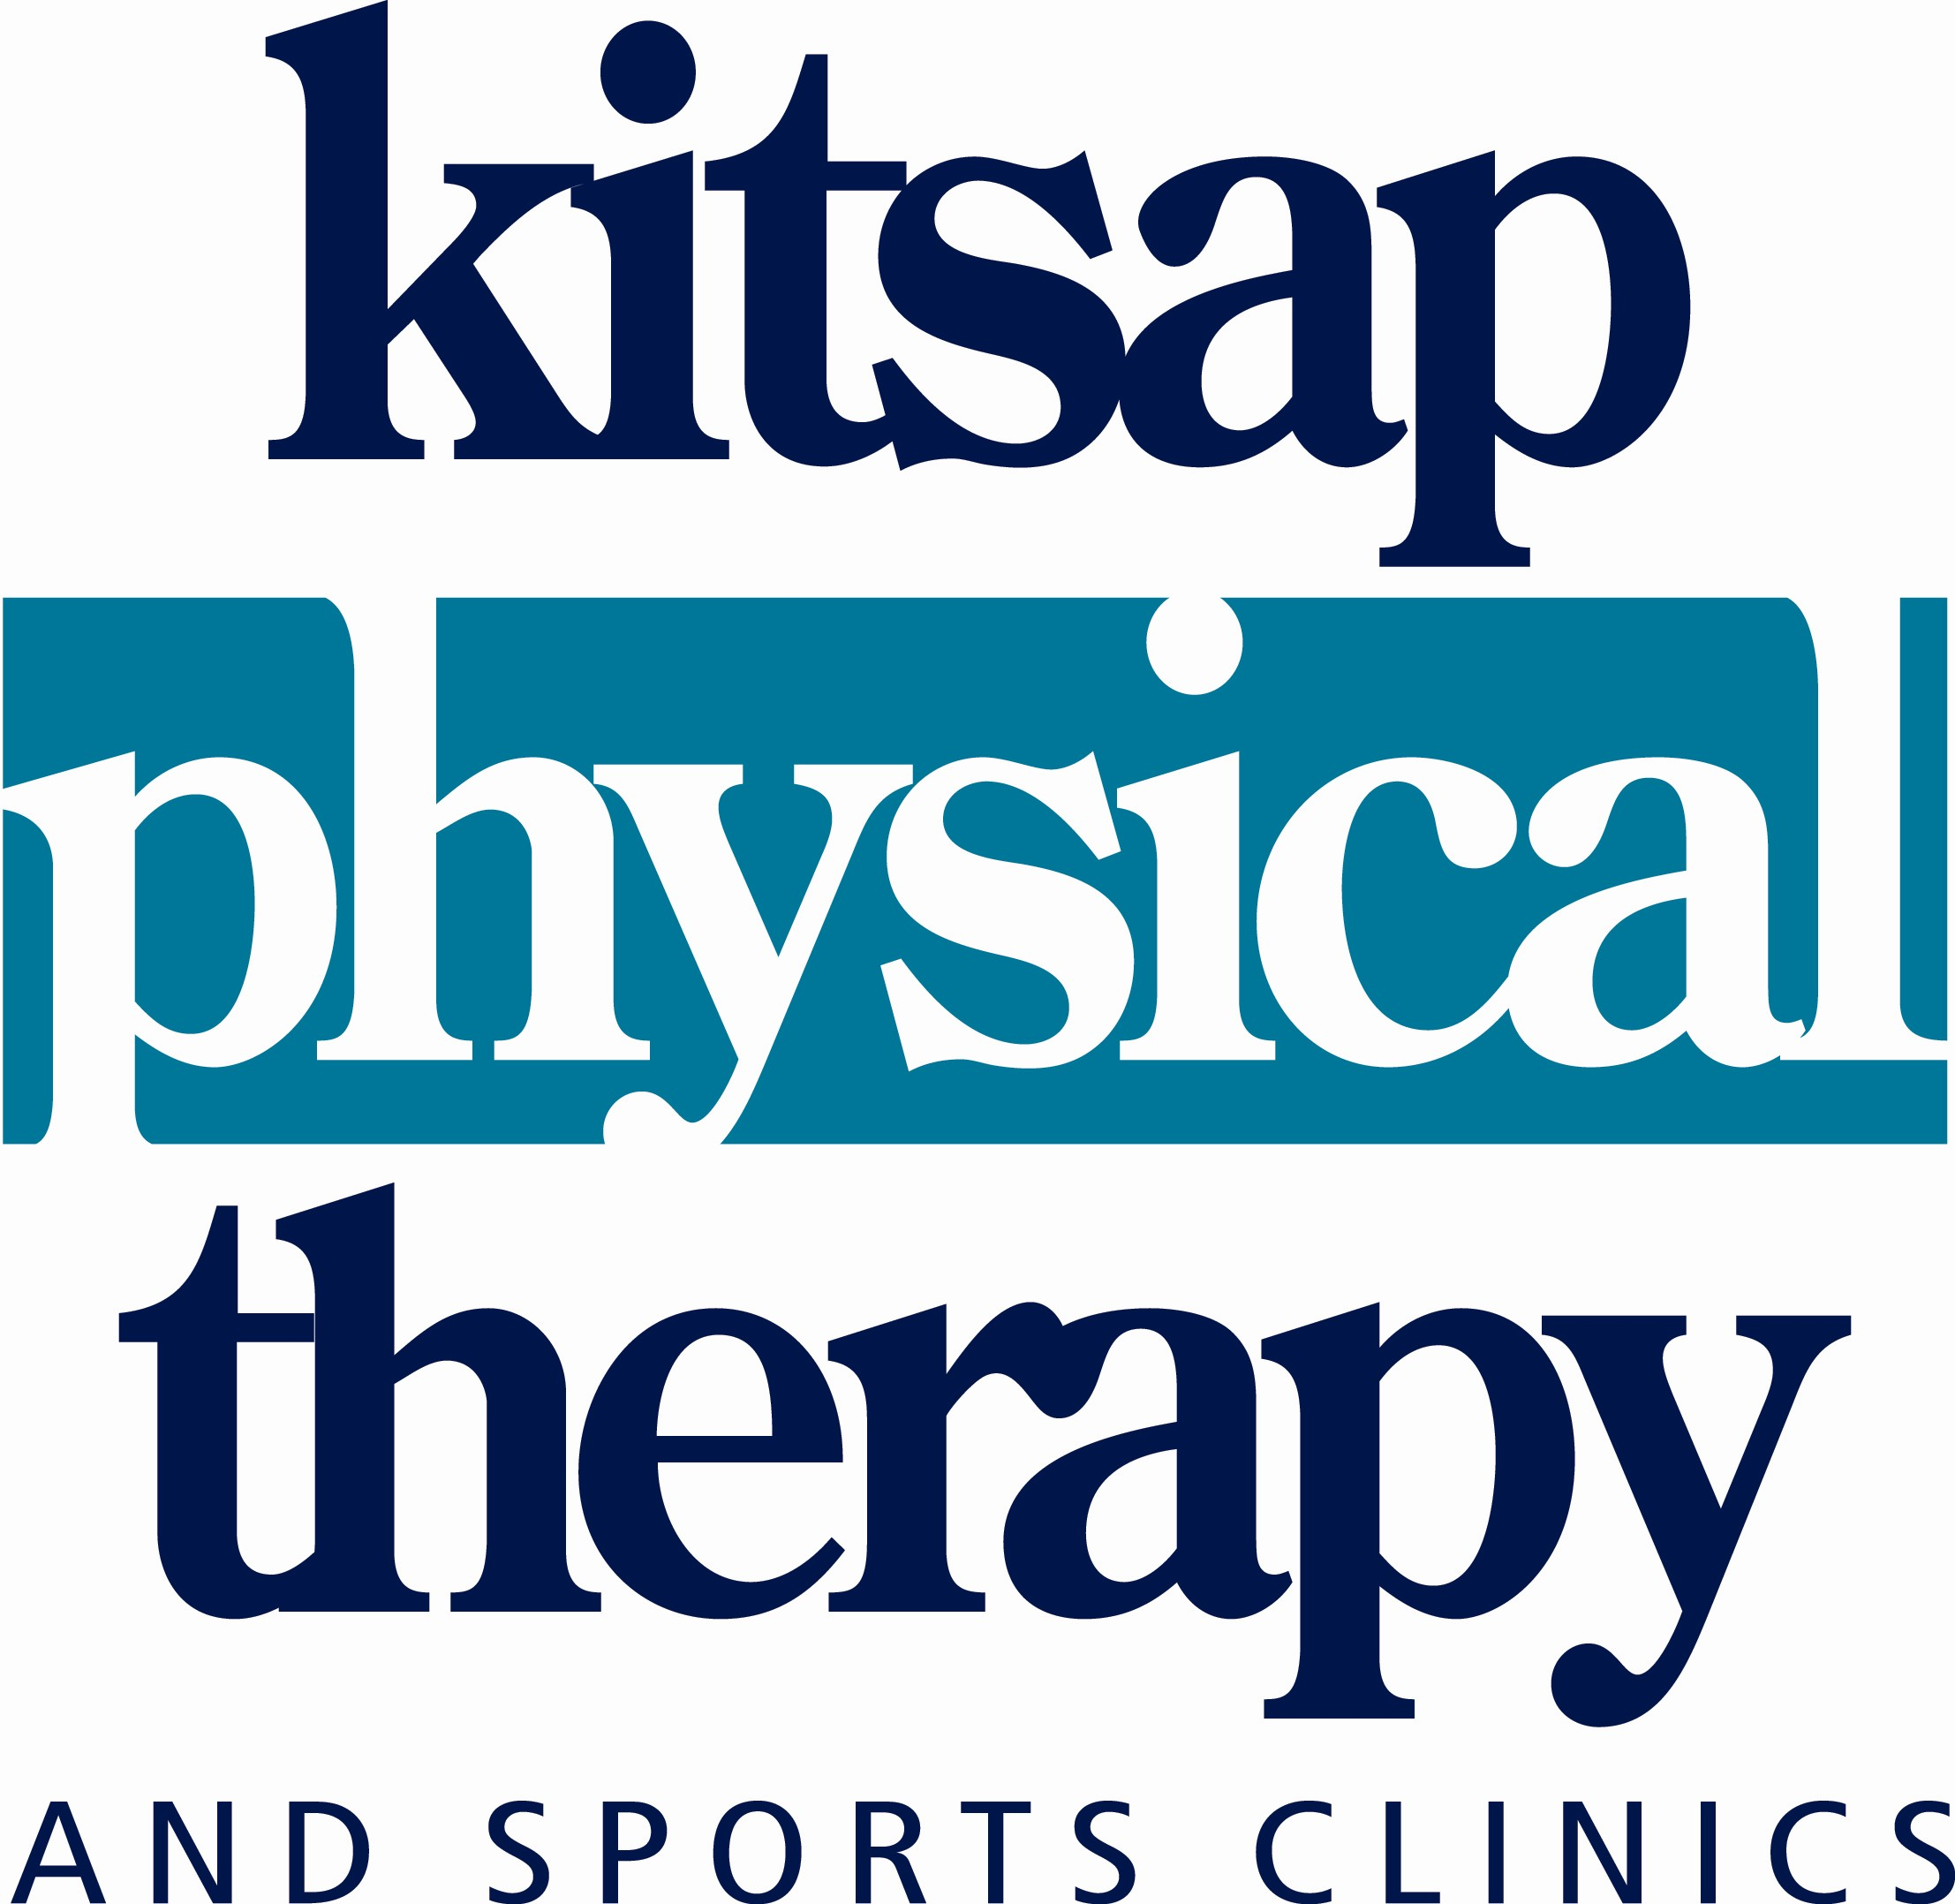 Kitsap Physical Therapy and Sports Clinics